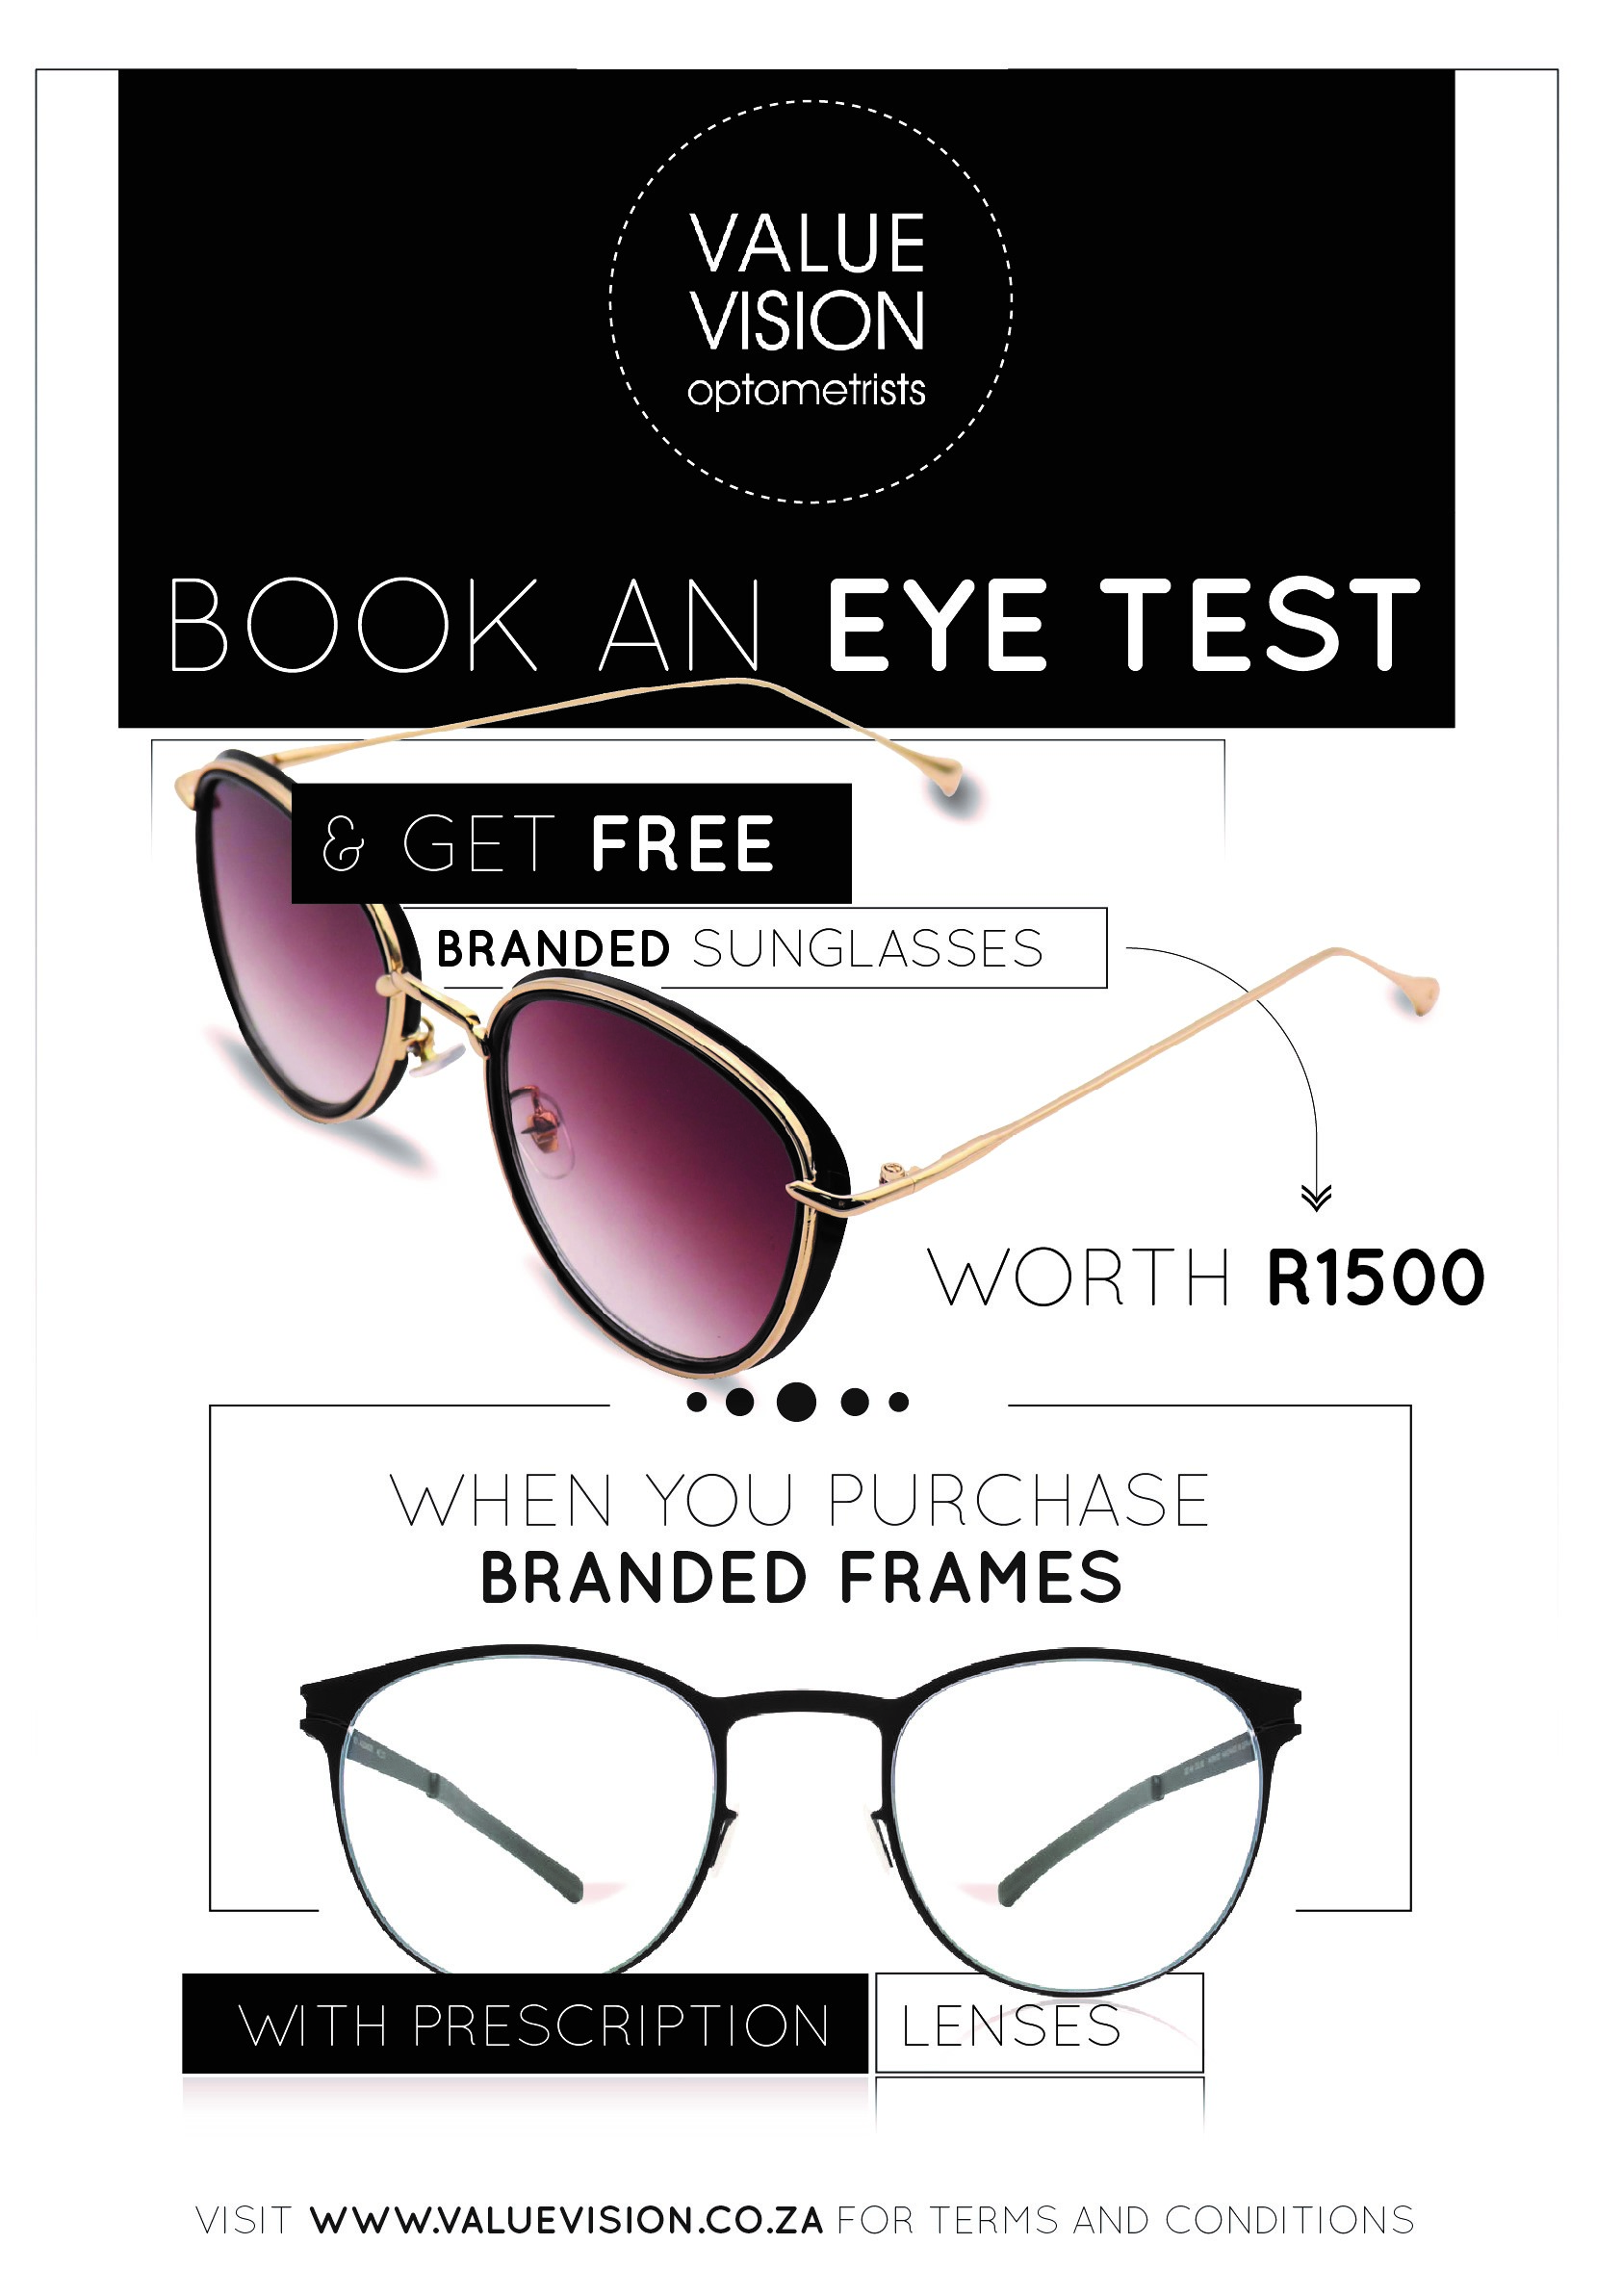 Special - Value Vision - Valhalla & SAFI Optometrists